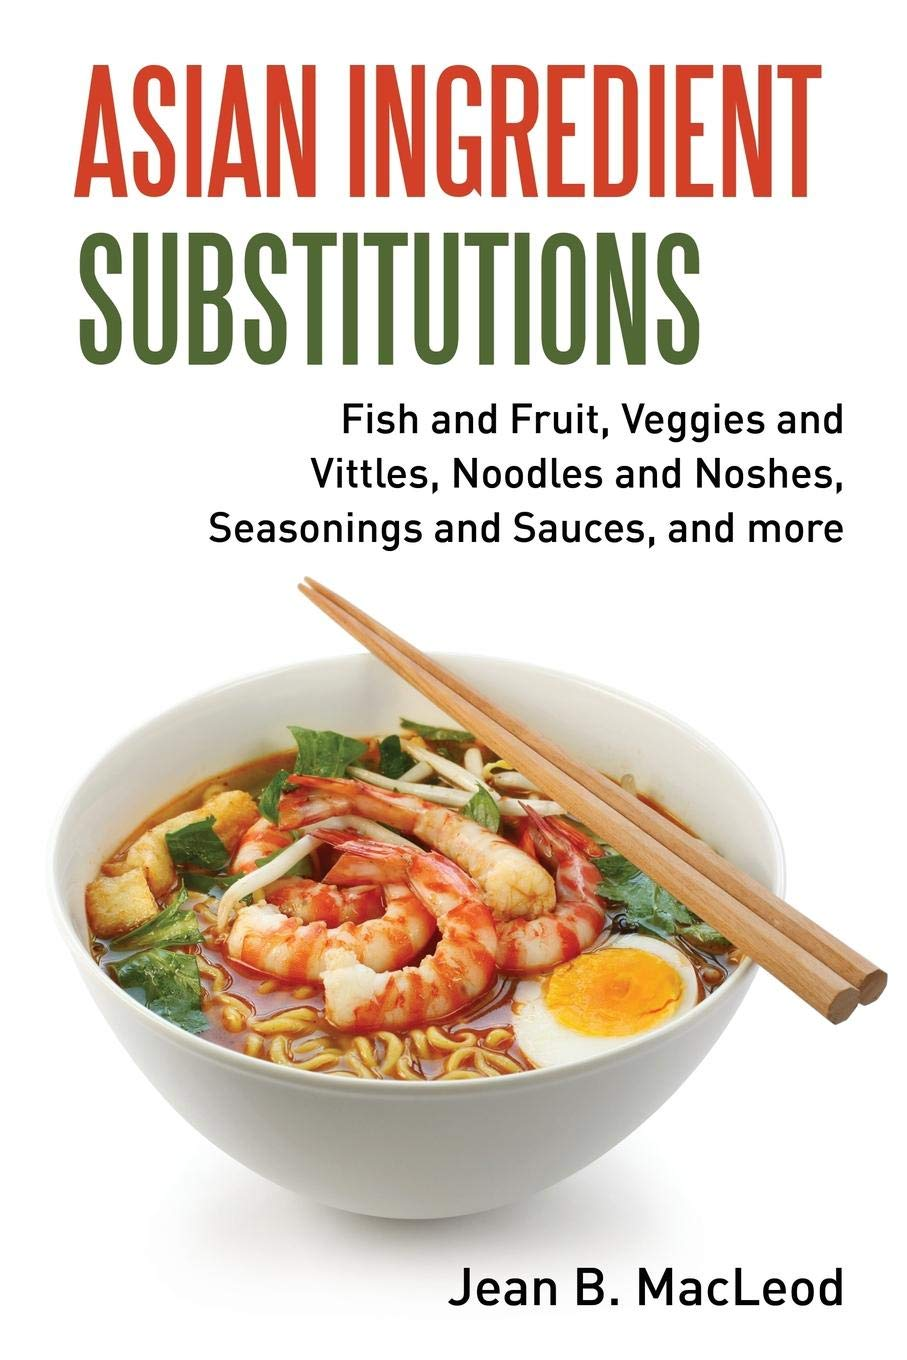 Asian Ingredient Substitutions: Fish and Fruit, Veggies and Vittles, Noodles and Noshes, Seasonings and Sauces, and more